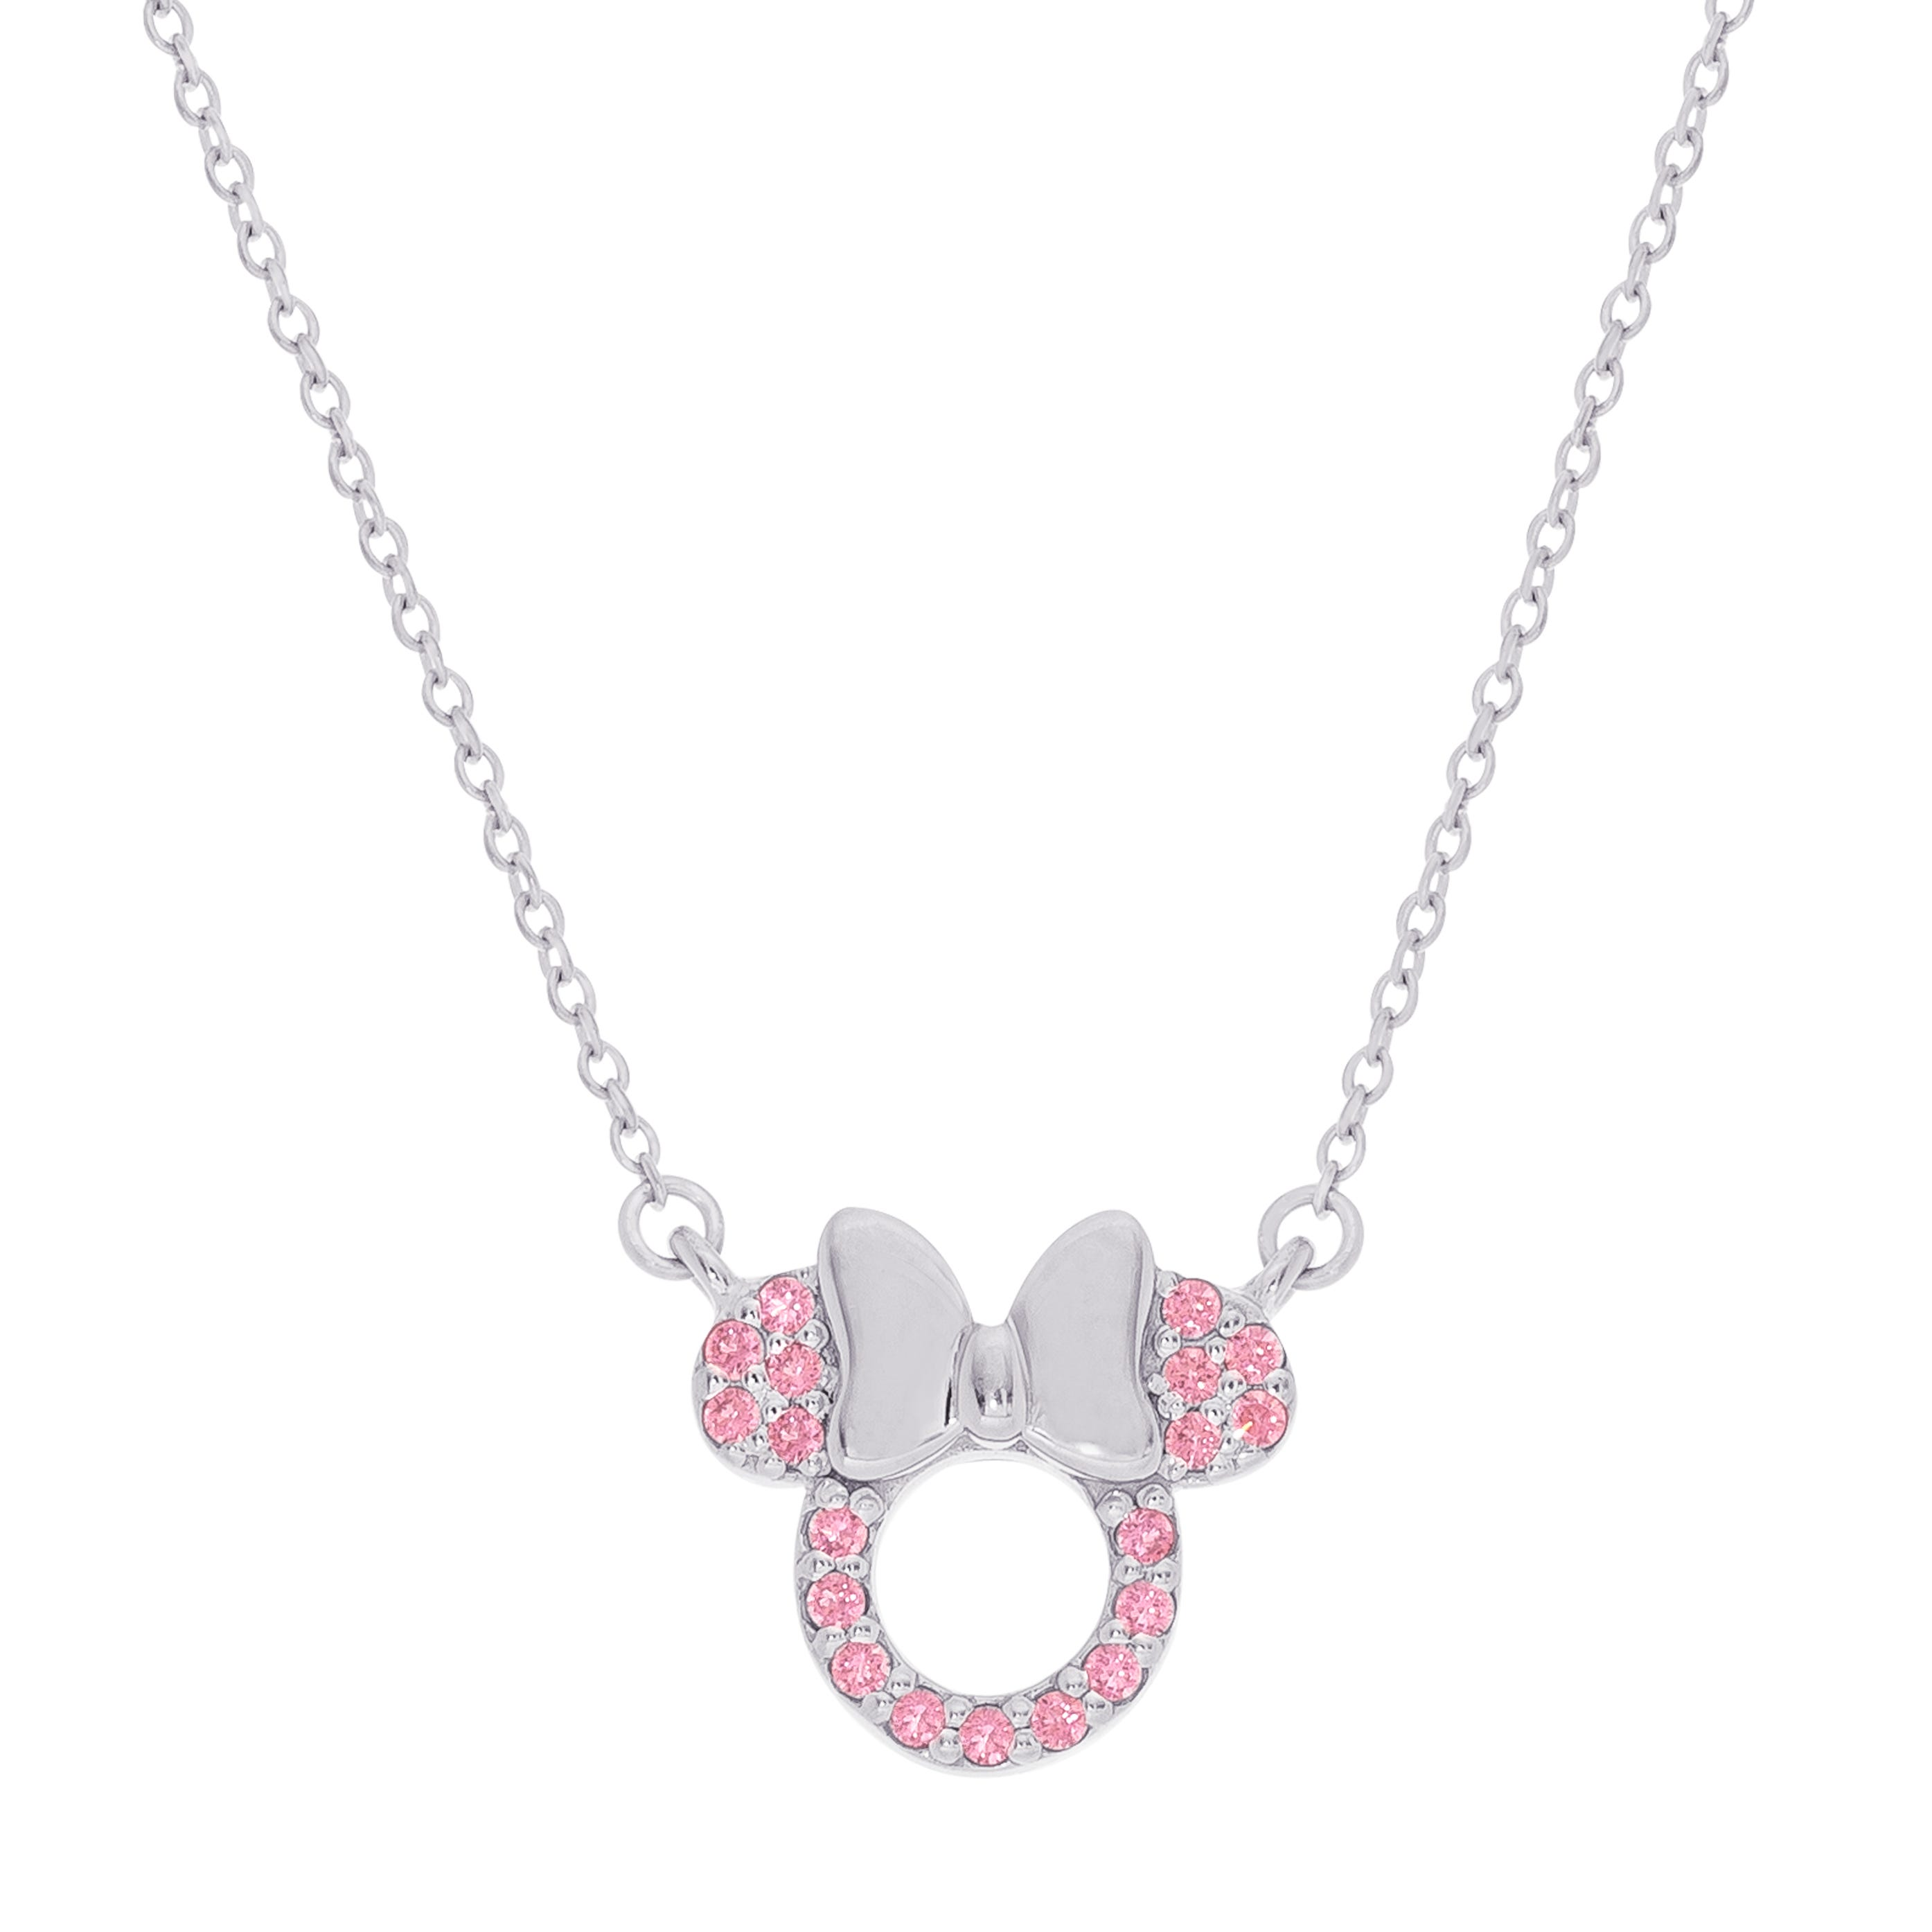 DISNEY© Minnie Mouse Pink CZ Necklace in Sterling Silver